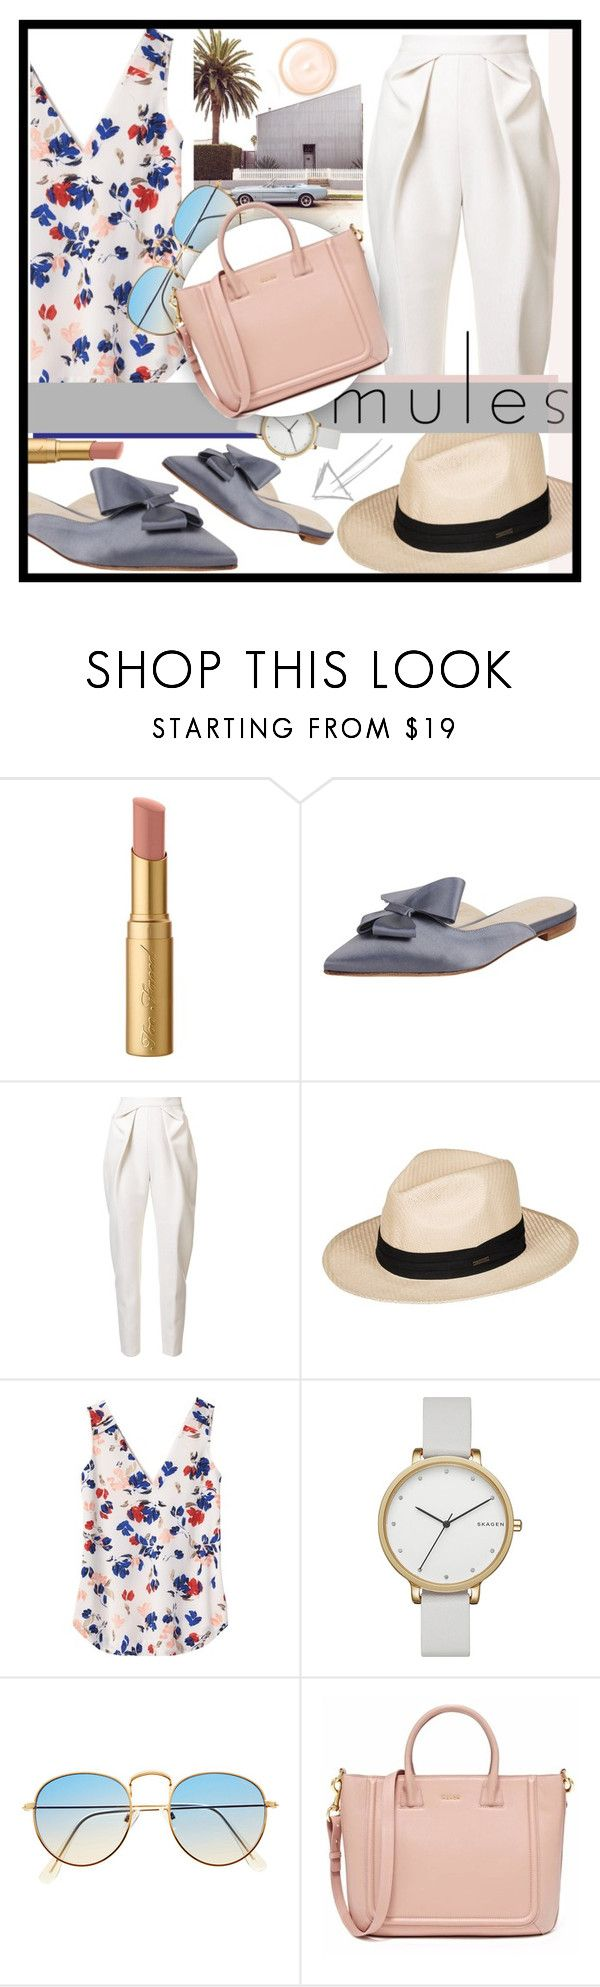 """#142 Mules (Contest Entry)"" by redpepperstyle ❤ liked on Polyvore featuring Too Faced Cosmetics, Butter Shoes, Delpozo, Roxy, Banana Republic, Skagen and Giorgio Armani"